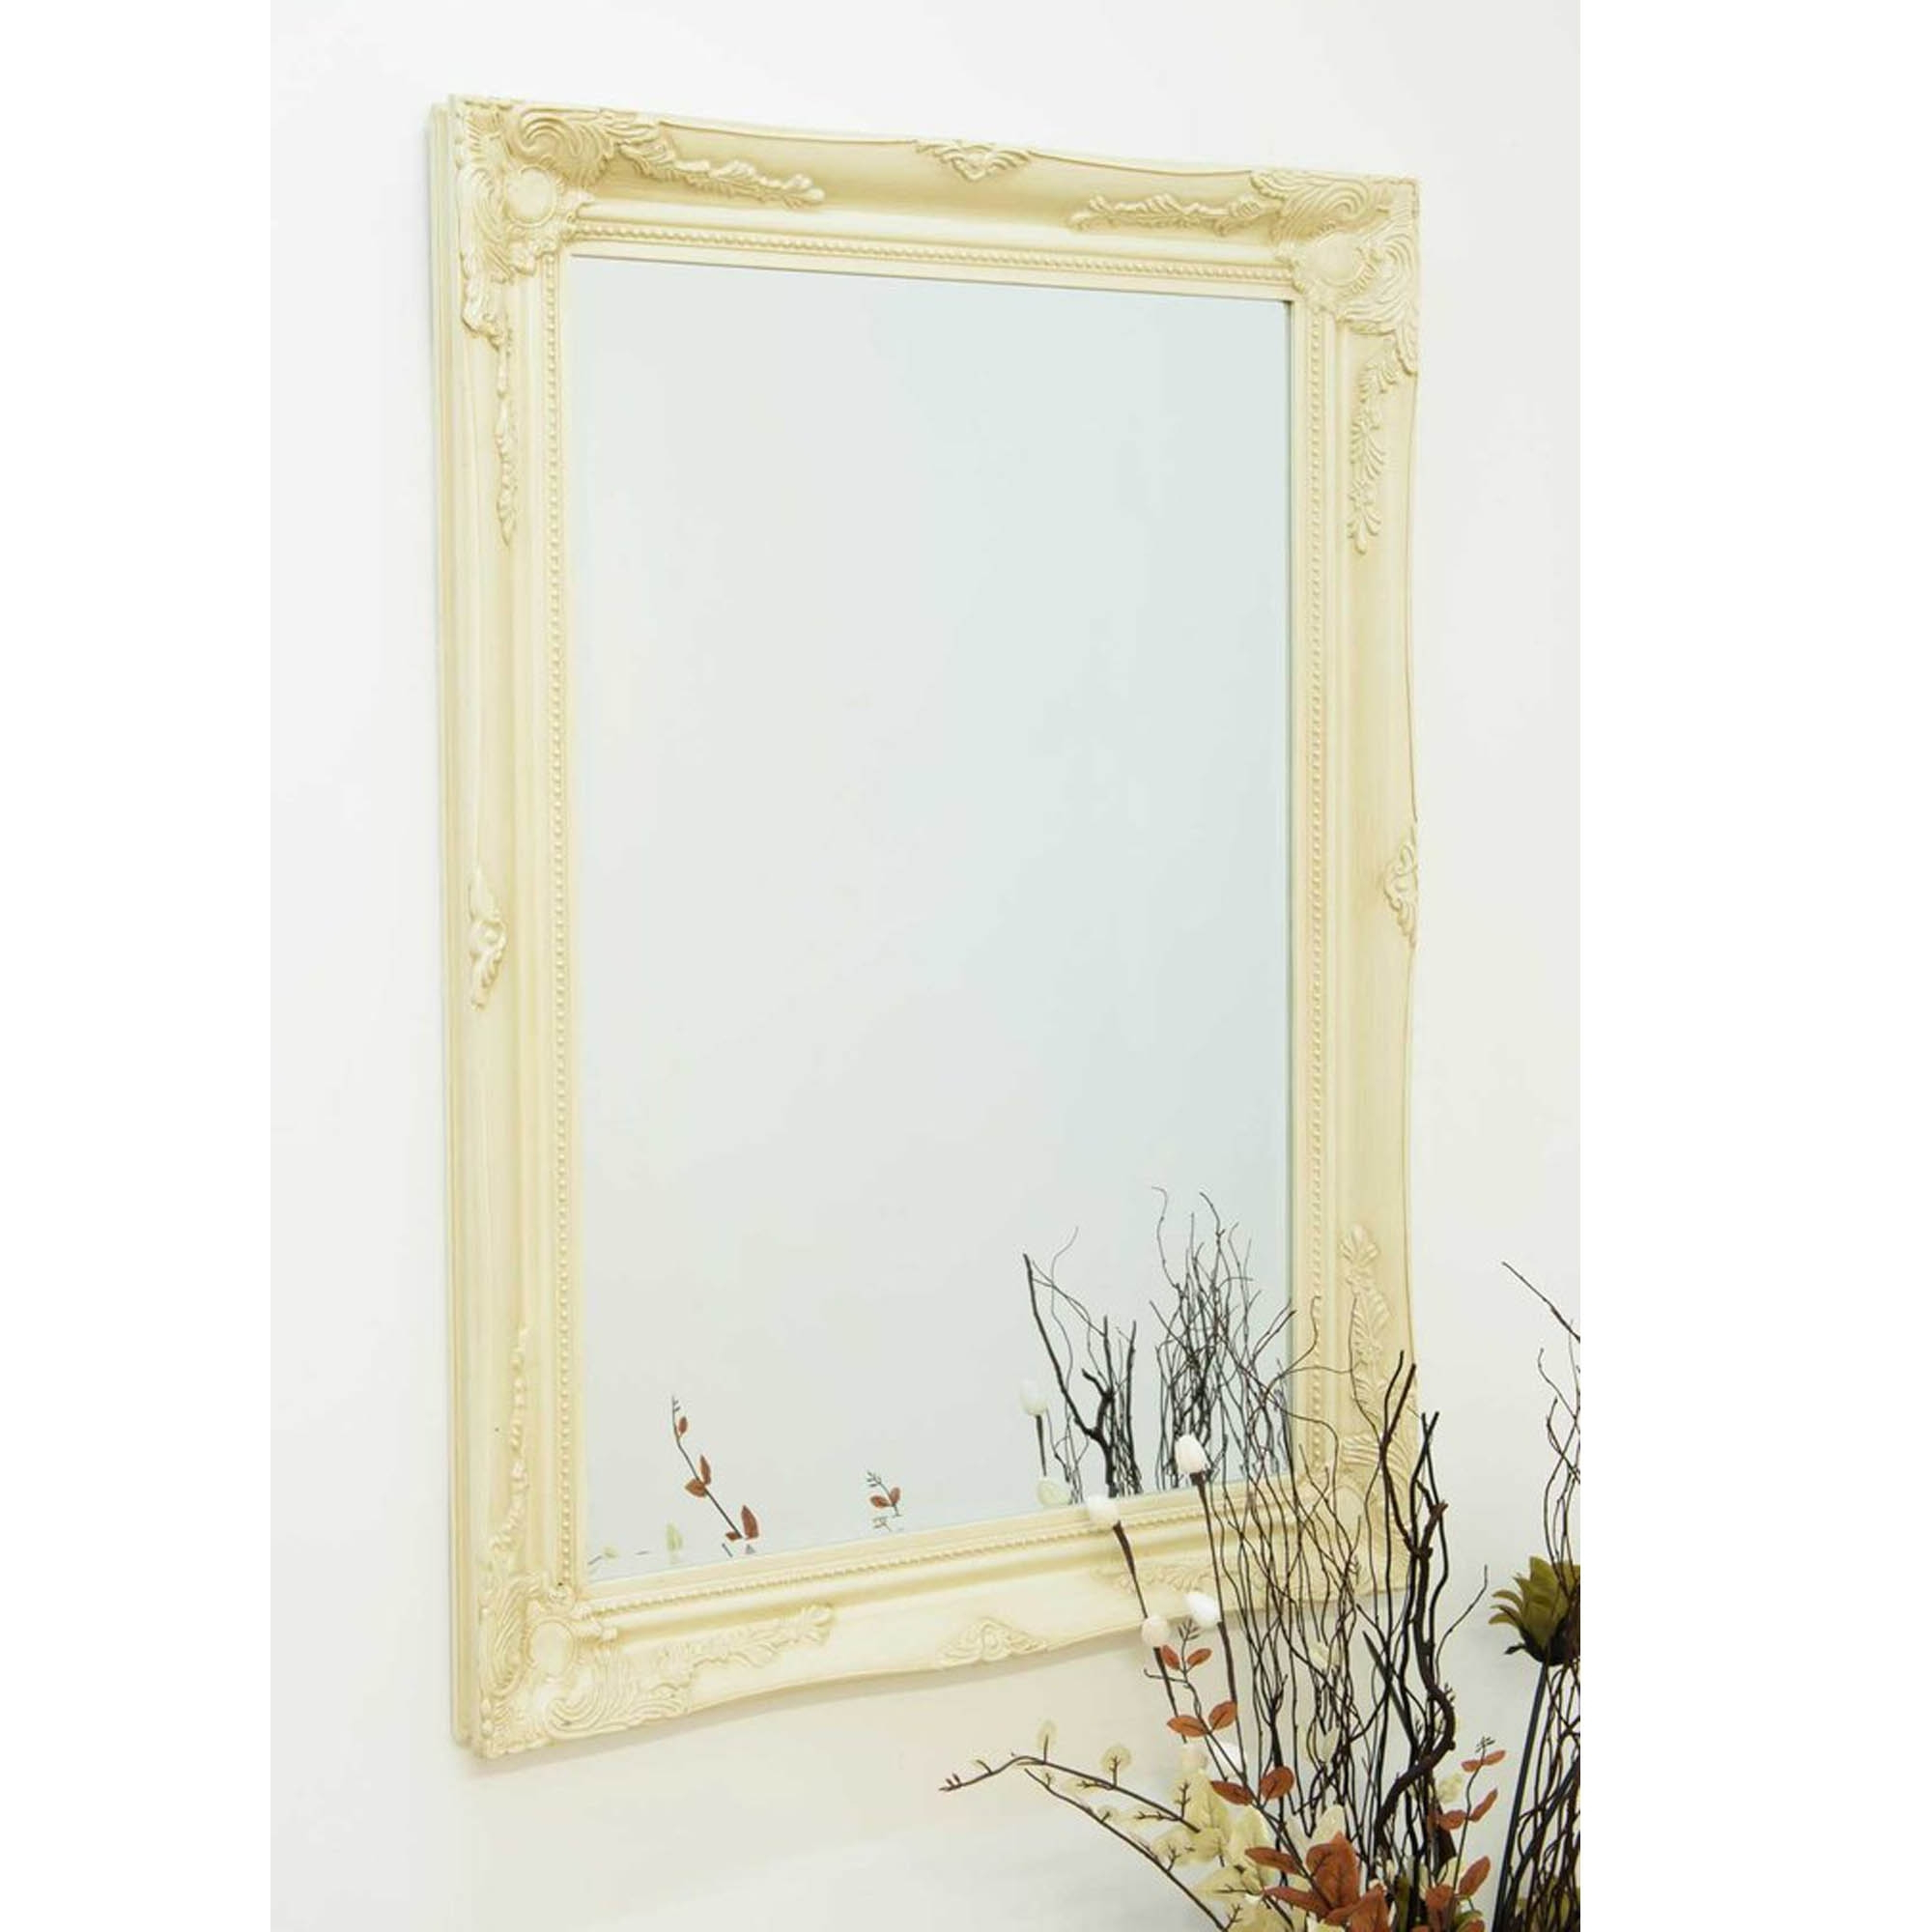 Ivory Wall Mirrors Within Most Current Ivory Decorative Antique French Style Wall Mirror (View 12 of 20)